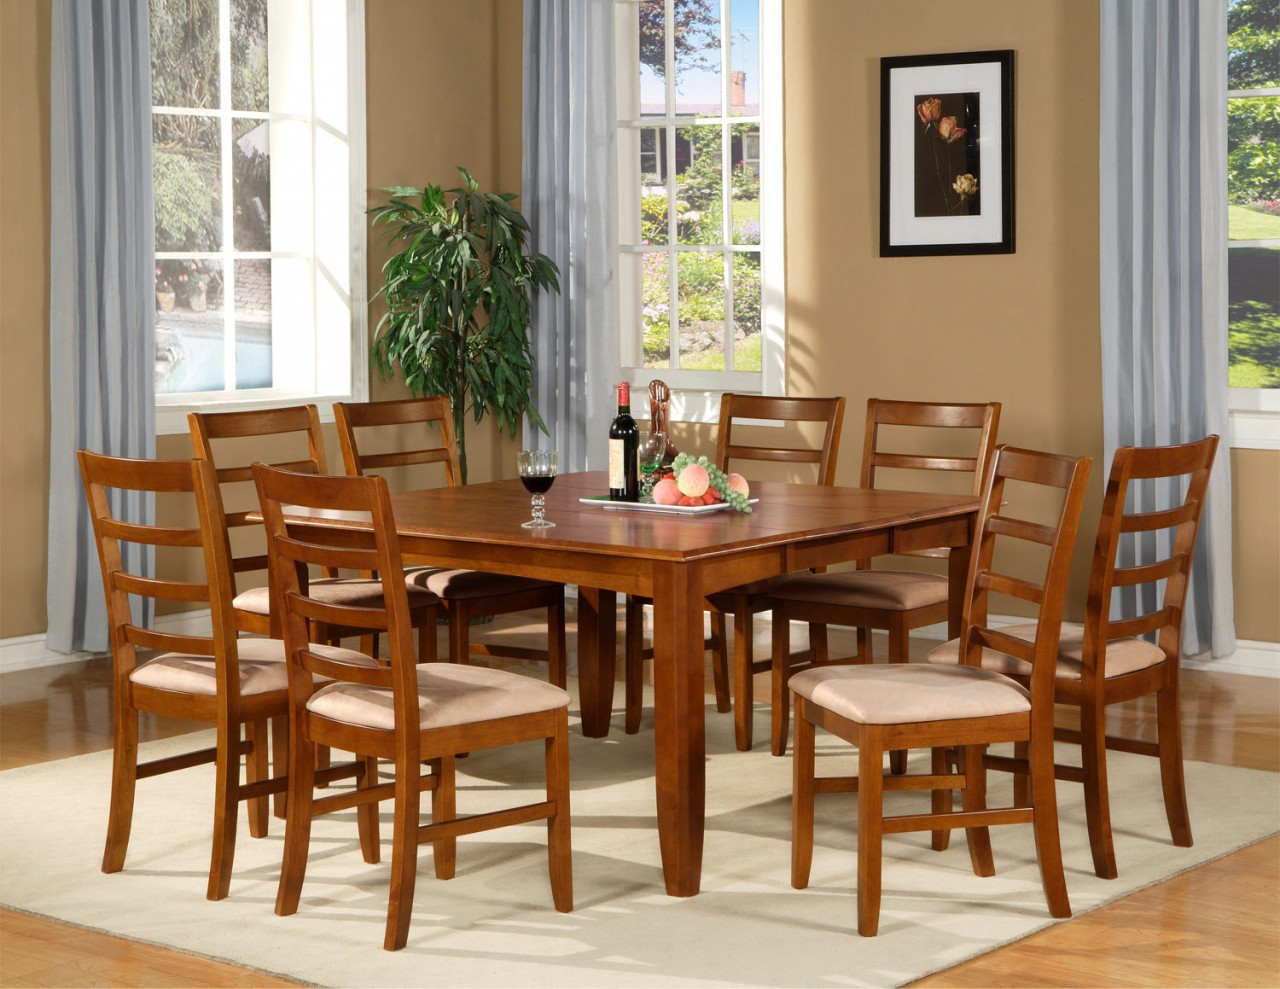 Kitchen dinette chairs photo - 2